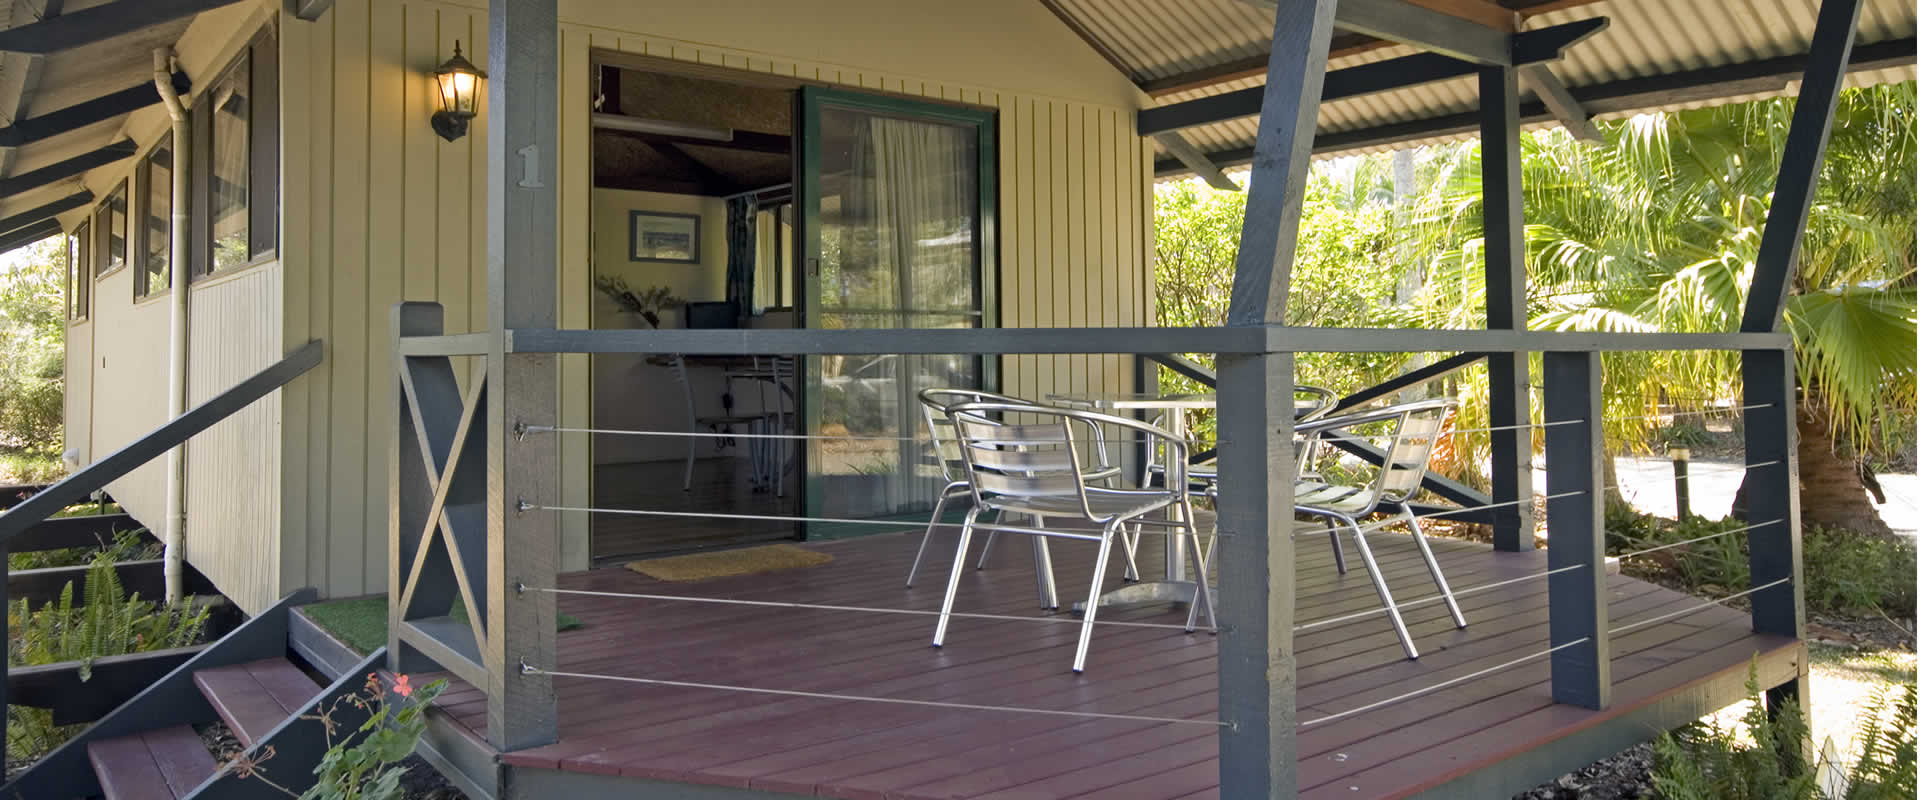 Wooli River Lodges